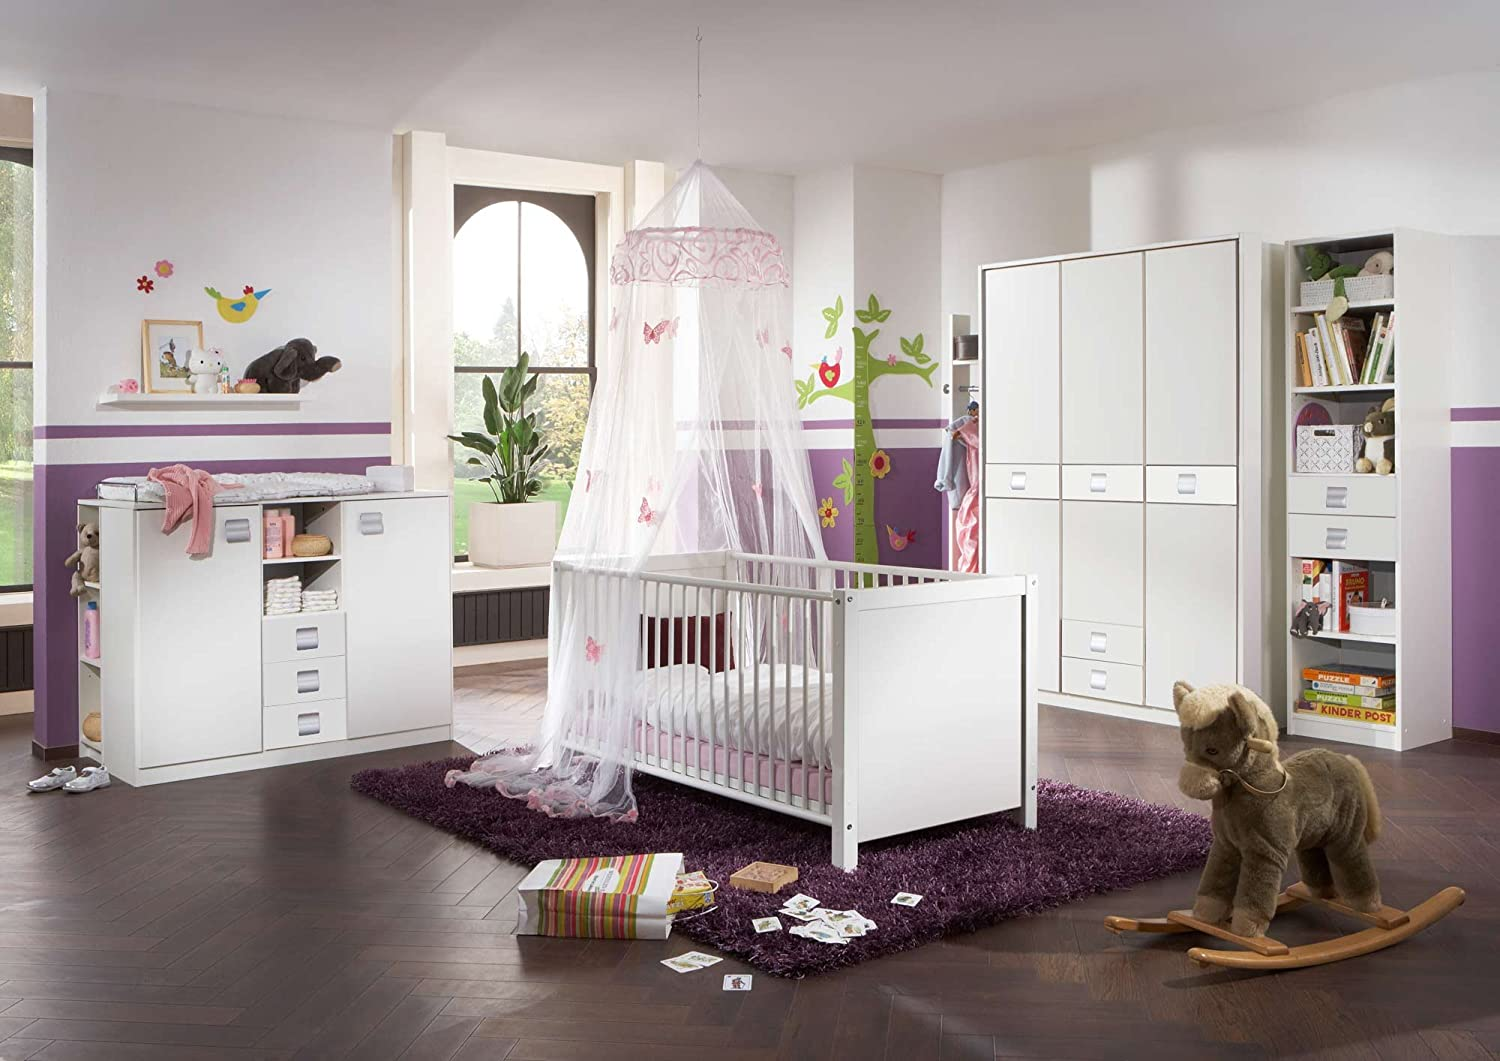 babyzimmer kinderzimmer komplett set babym bel babybett wickelkommode babyausstattung. Black Bedroom Furniture Sets. Home Design Ideas